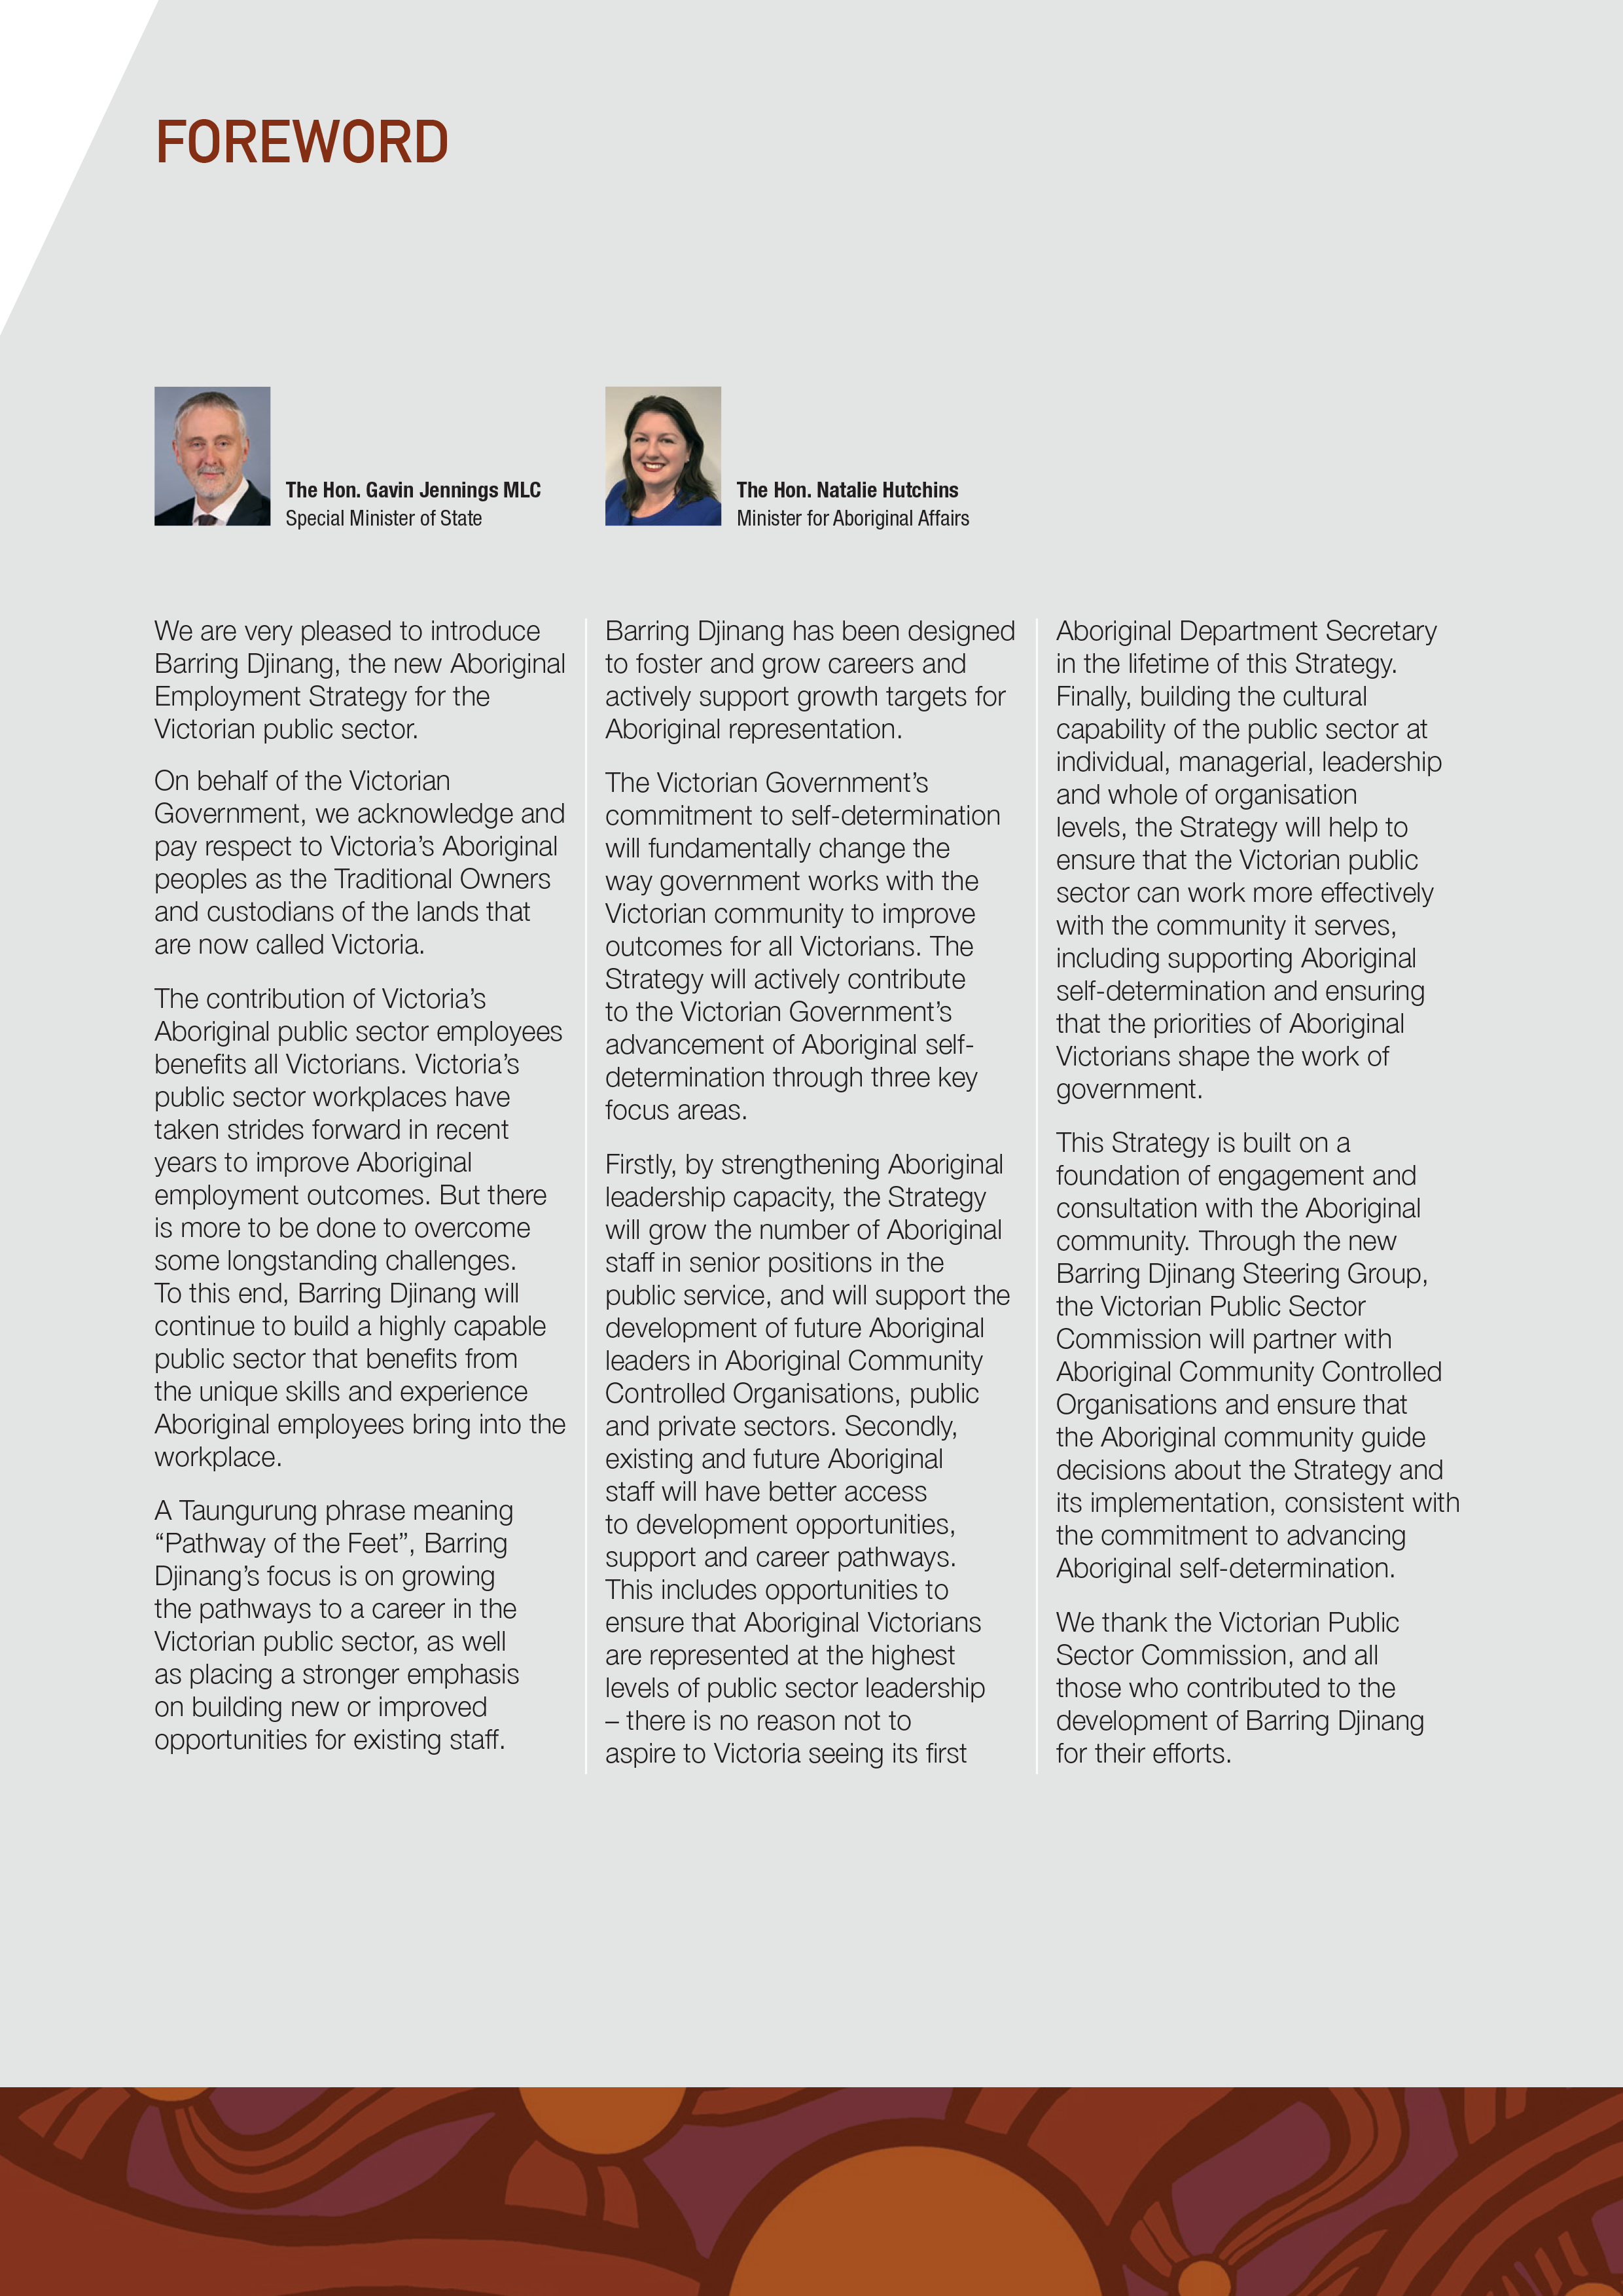 Foreword | Joint statement from The Hon. Gavin Jennings MLC, Special Minister of State and The Hon. Natalie Hutchins, Minister for Aboriginal Affairs